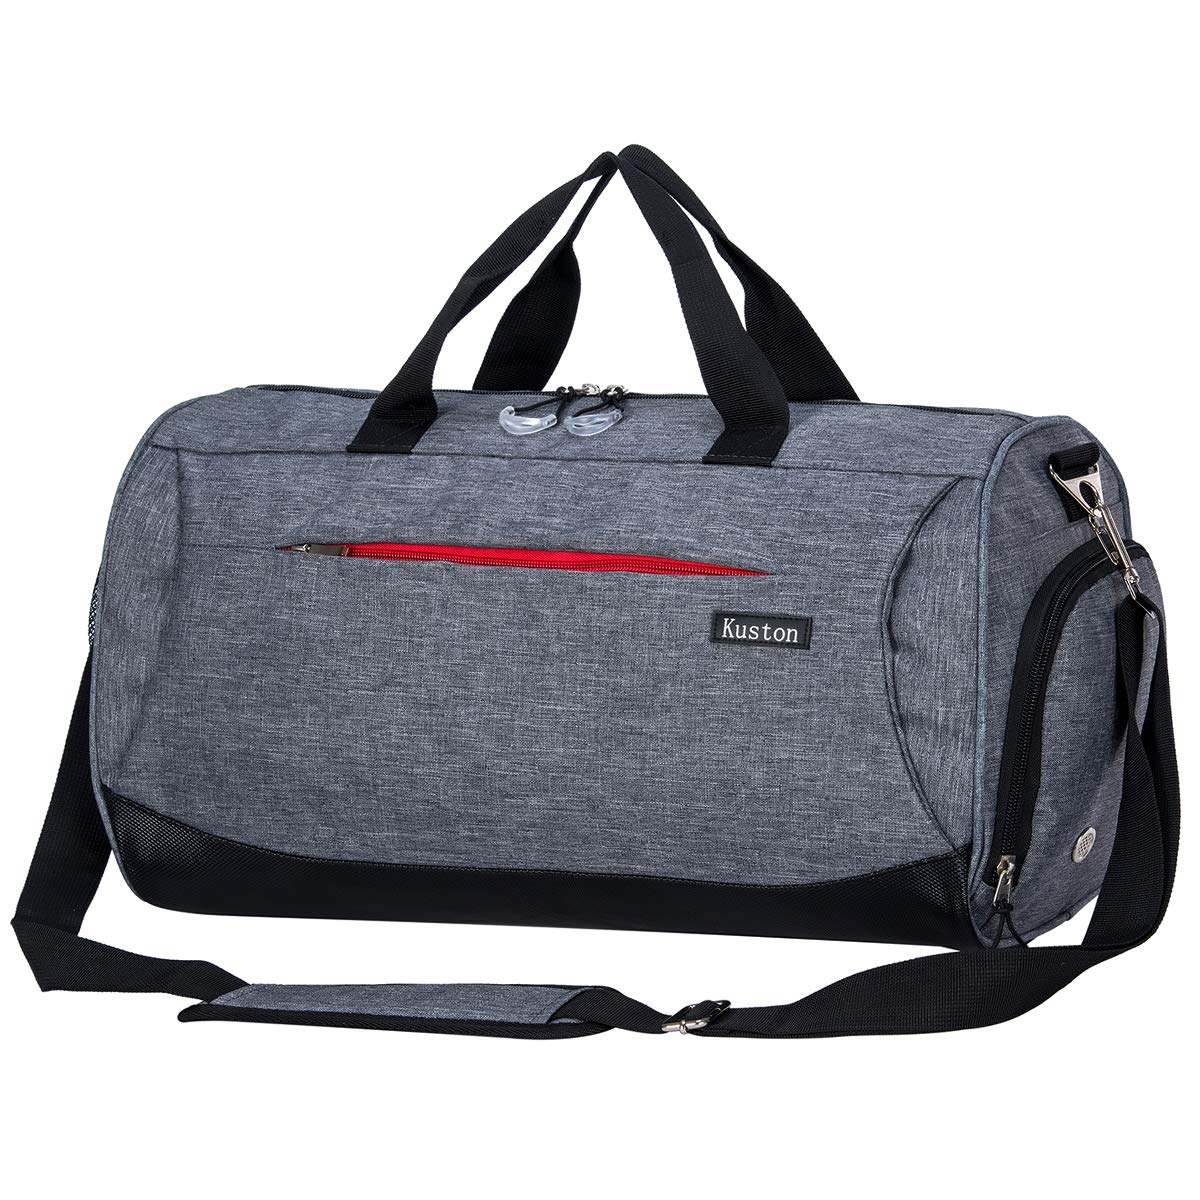 ca6d55aec1e4 Kuston Sports Gym Bag with Shoes Compartment Travel Duffel Bag for Men and  Women product image